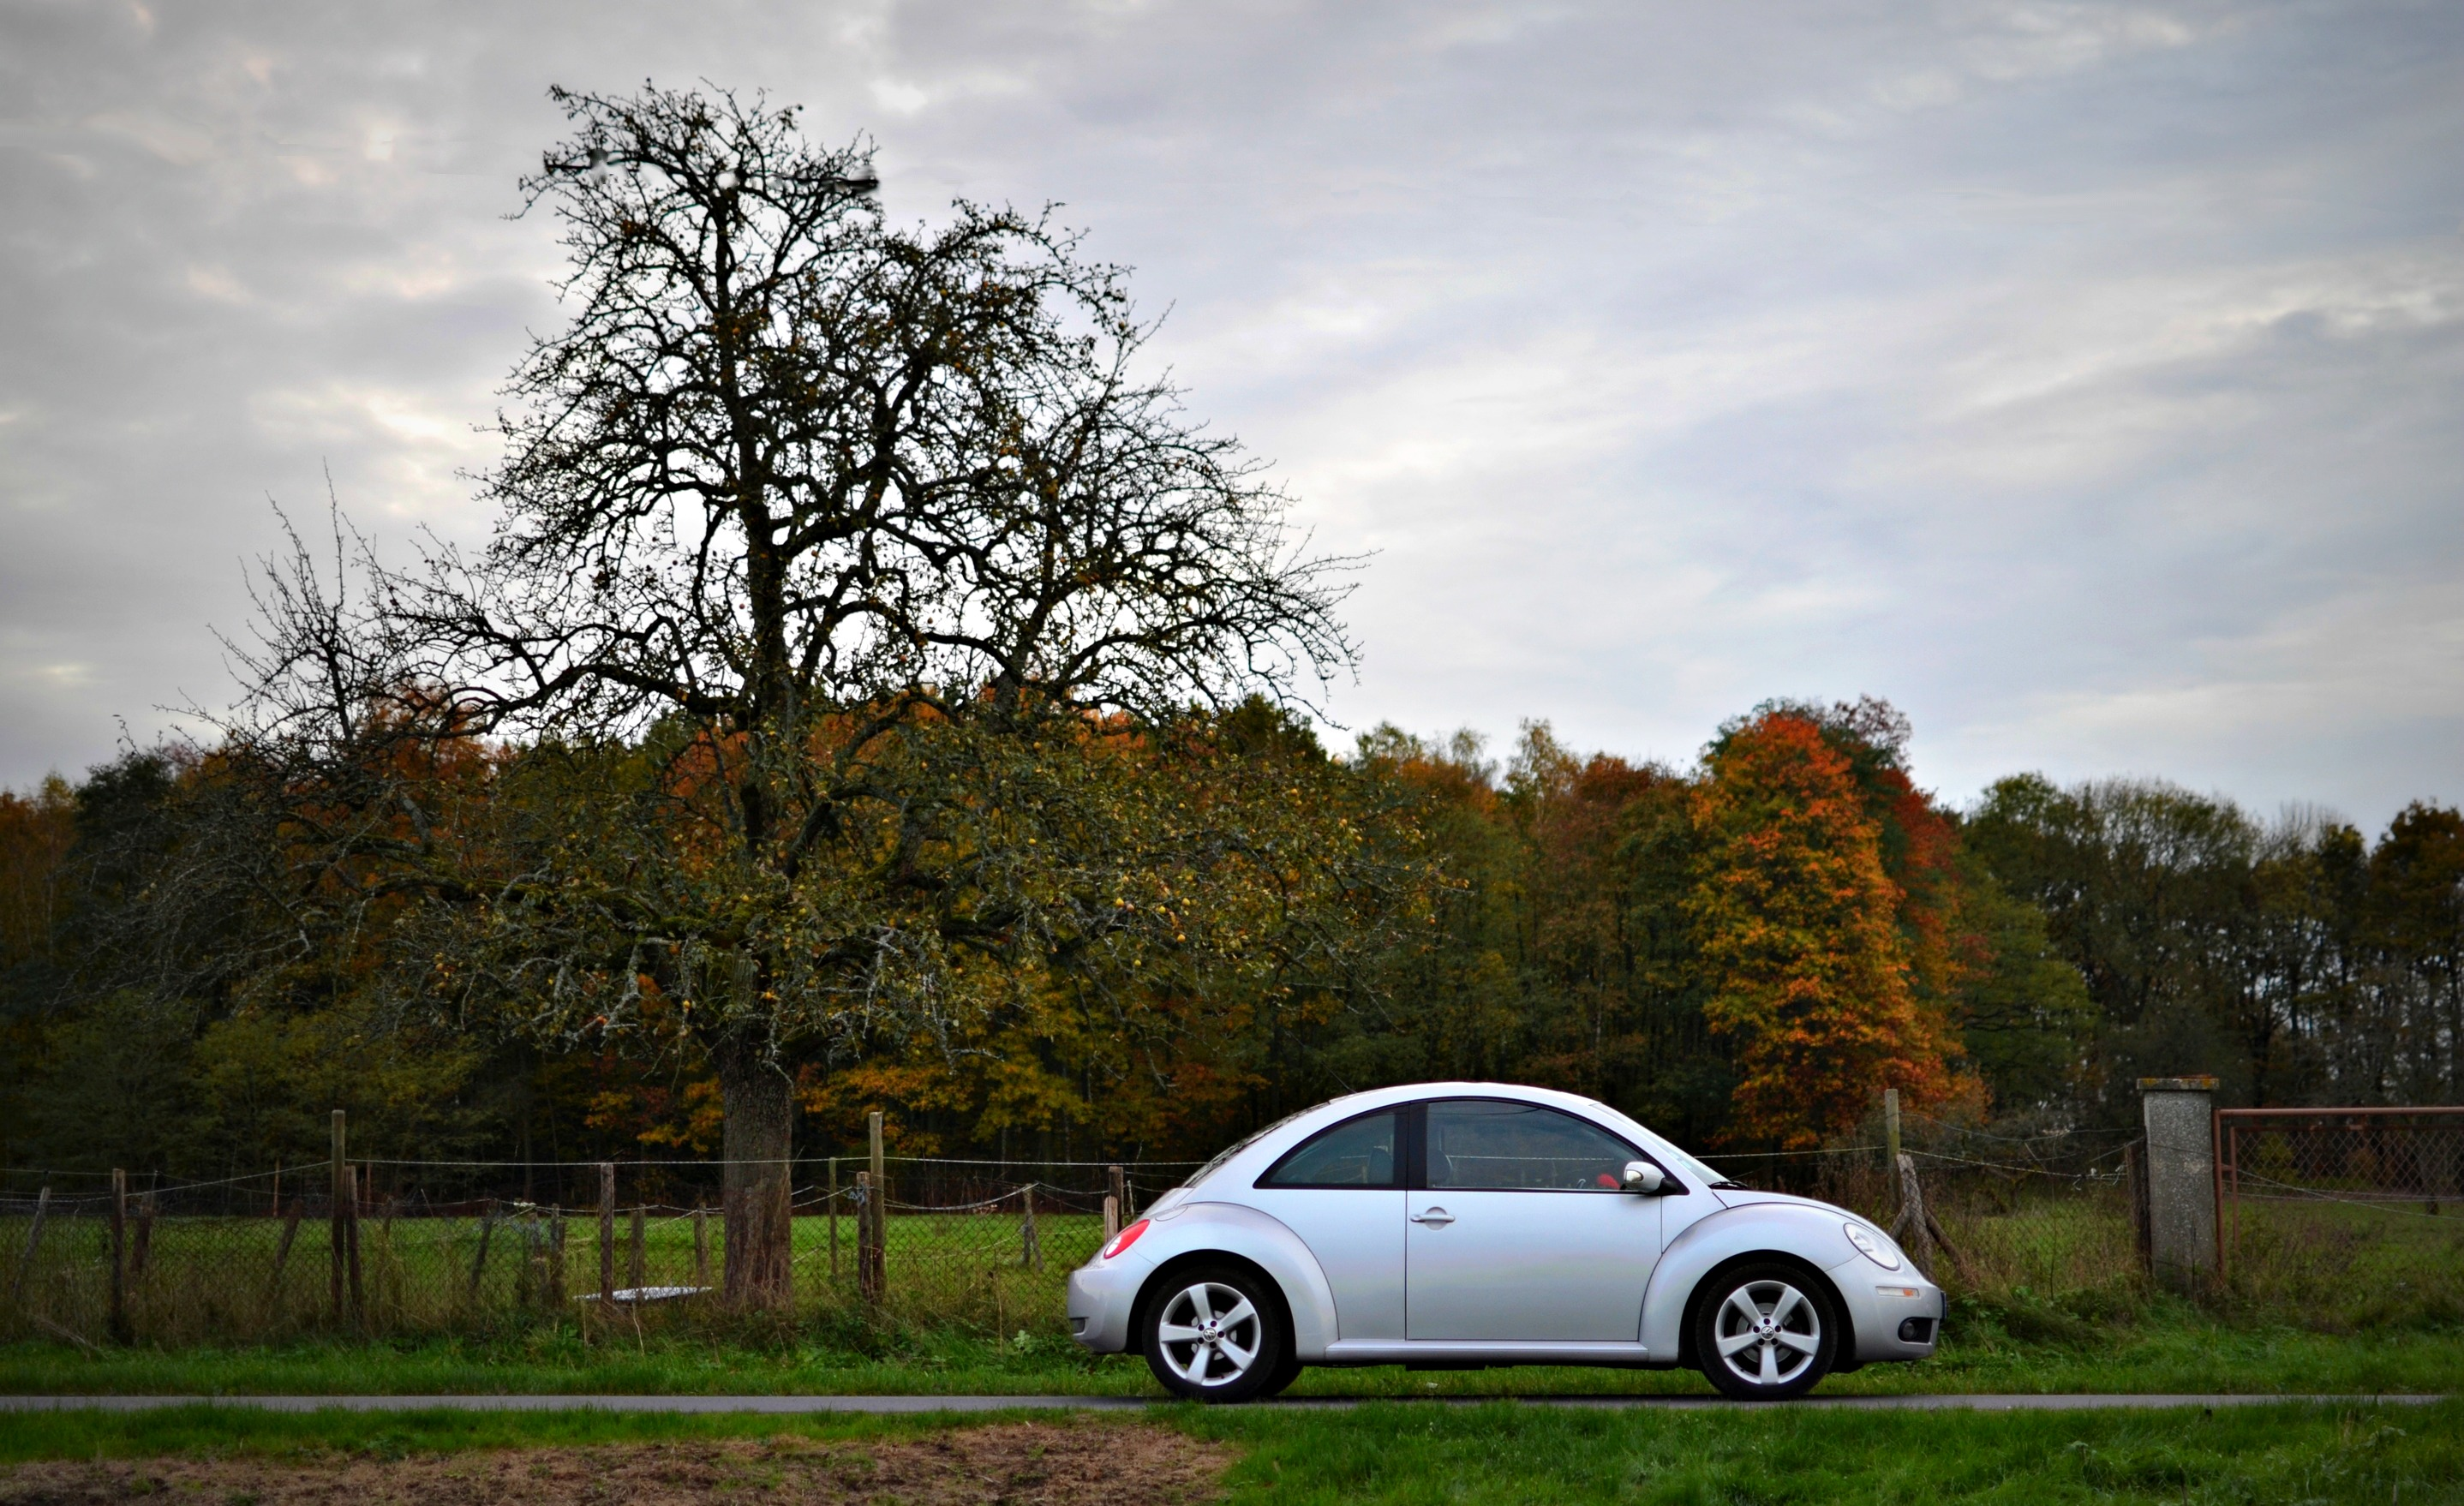 concours-photo-vw-nb-big